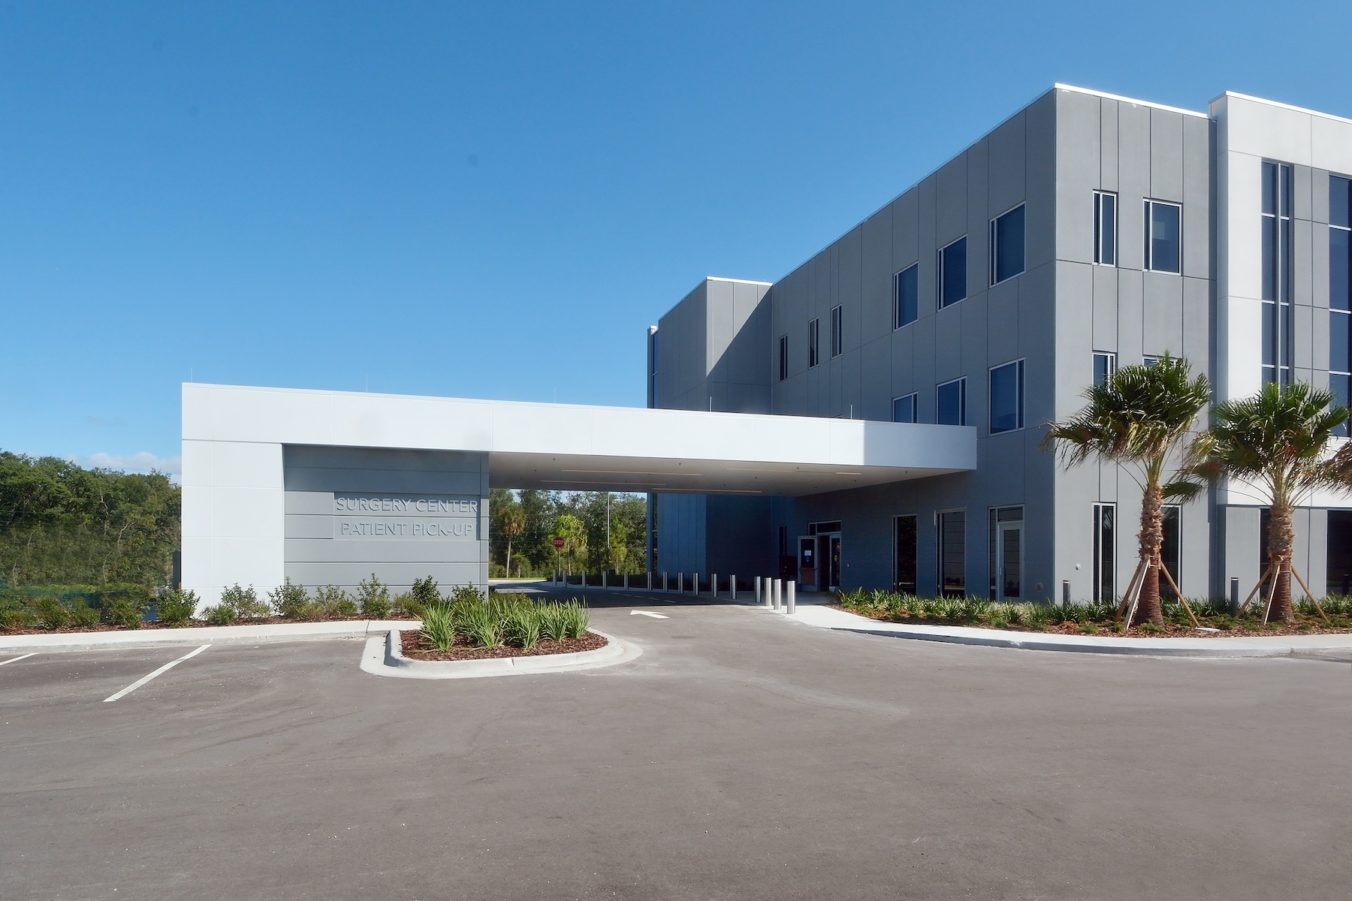 Exterior view of the covered drop off entrance to the surgery center